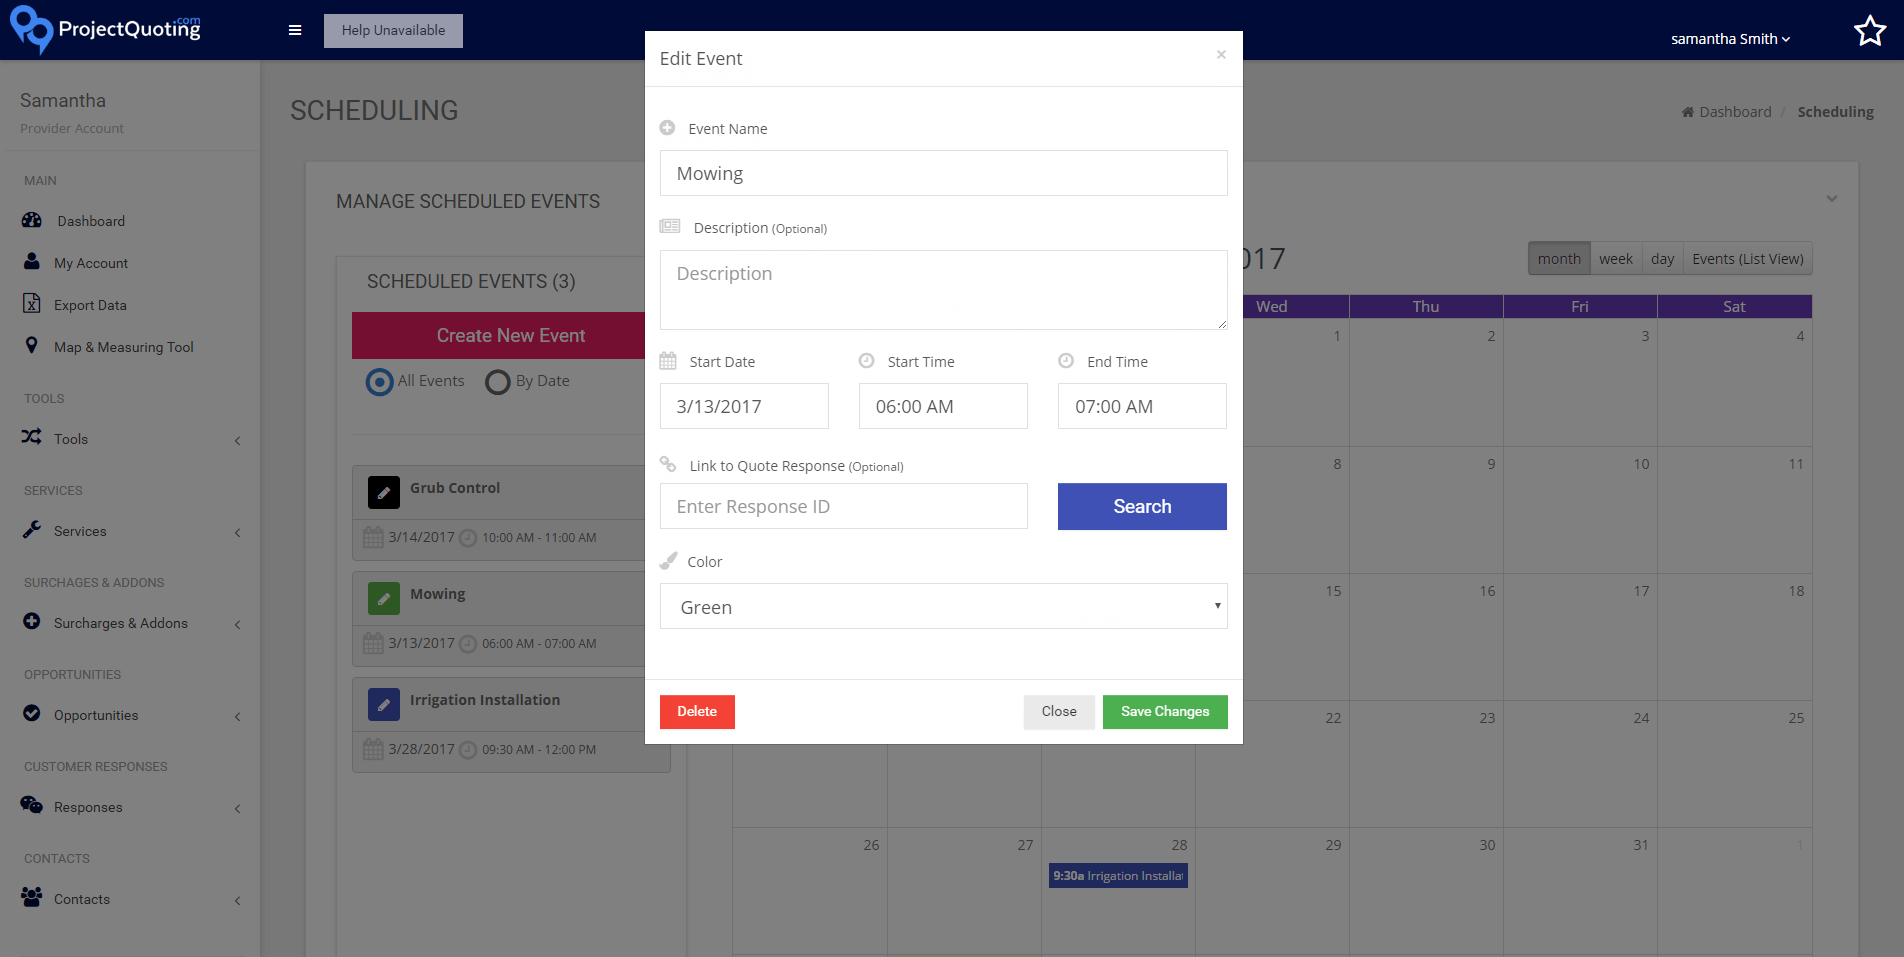 Create and edit events and add them to the calendar